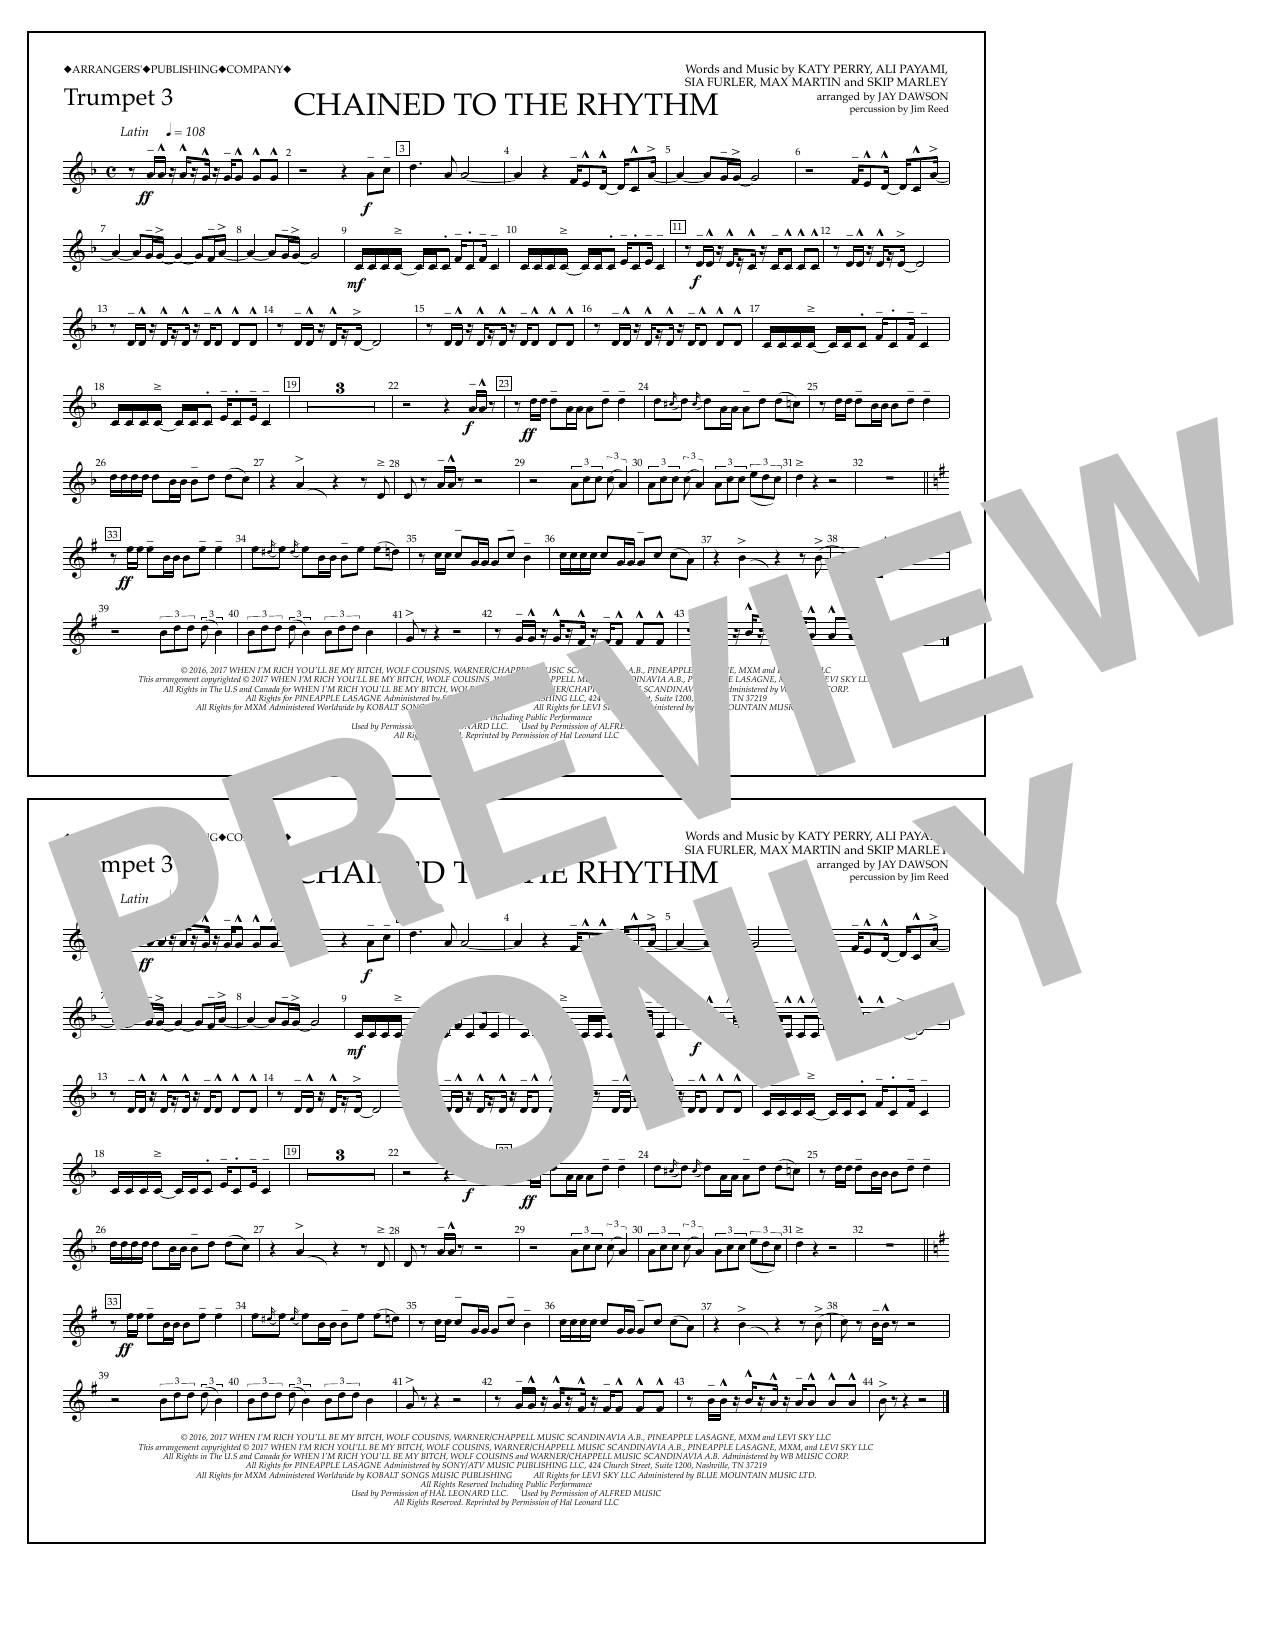 Chained to the Rhythm - Trumpet 3 Sheet Music